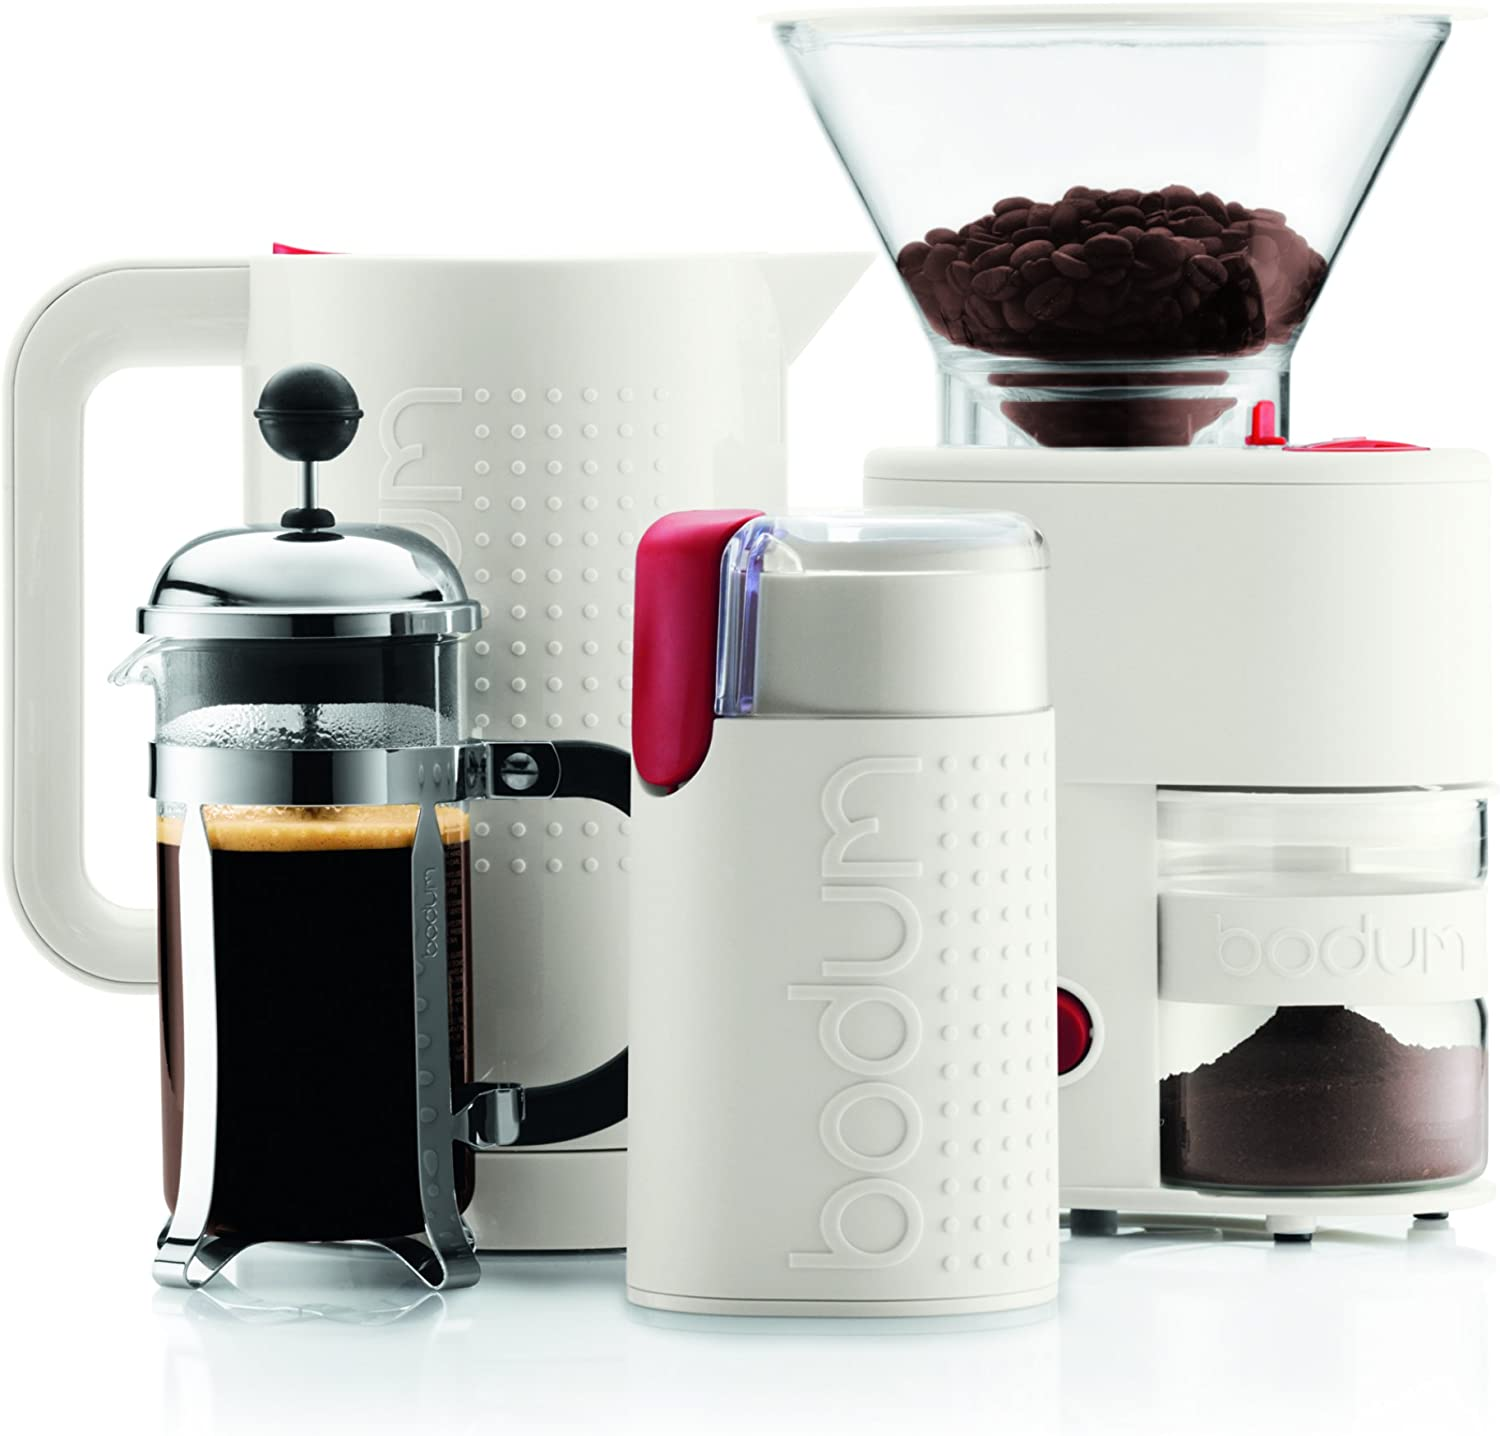 BODUM Bistro Electric Coffee Grinder Holds 60 g of Beans Red